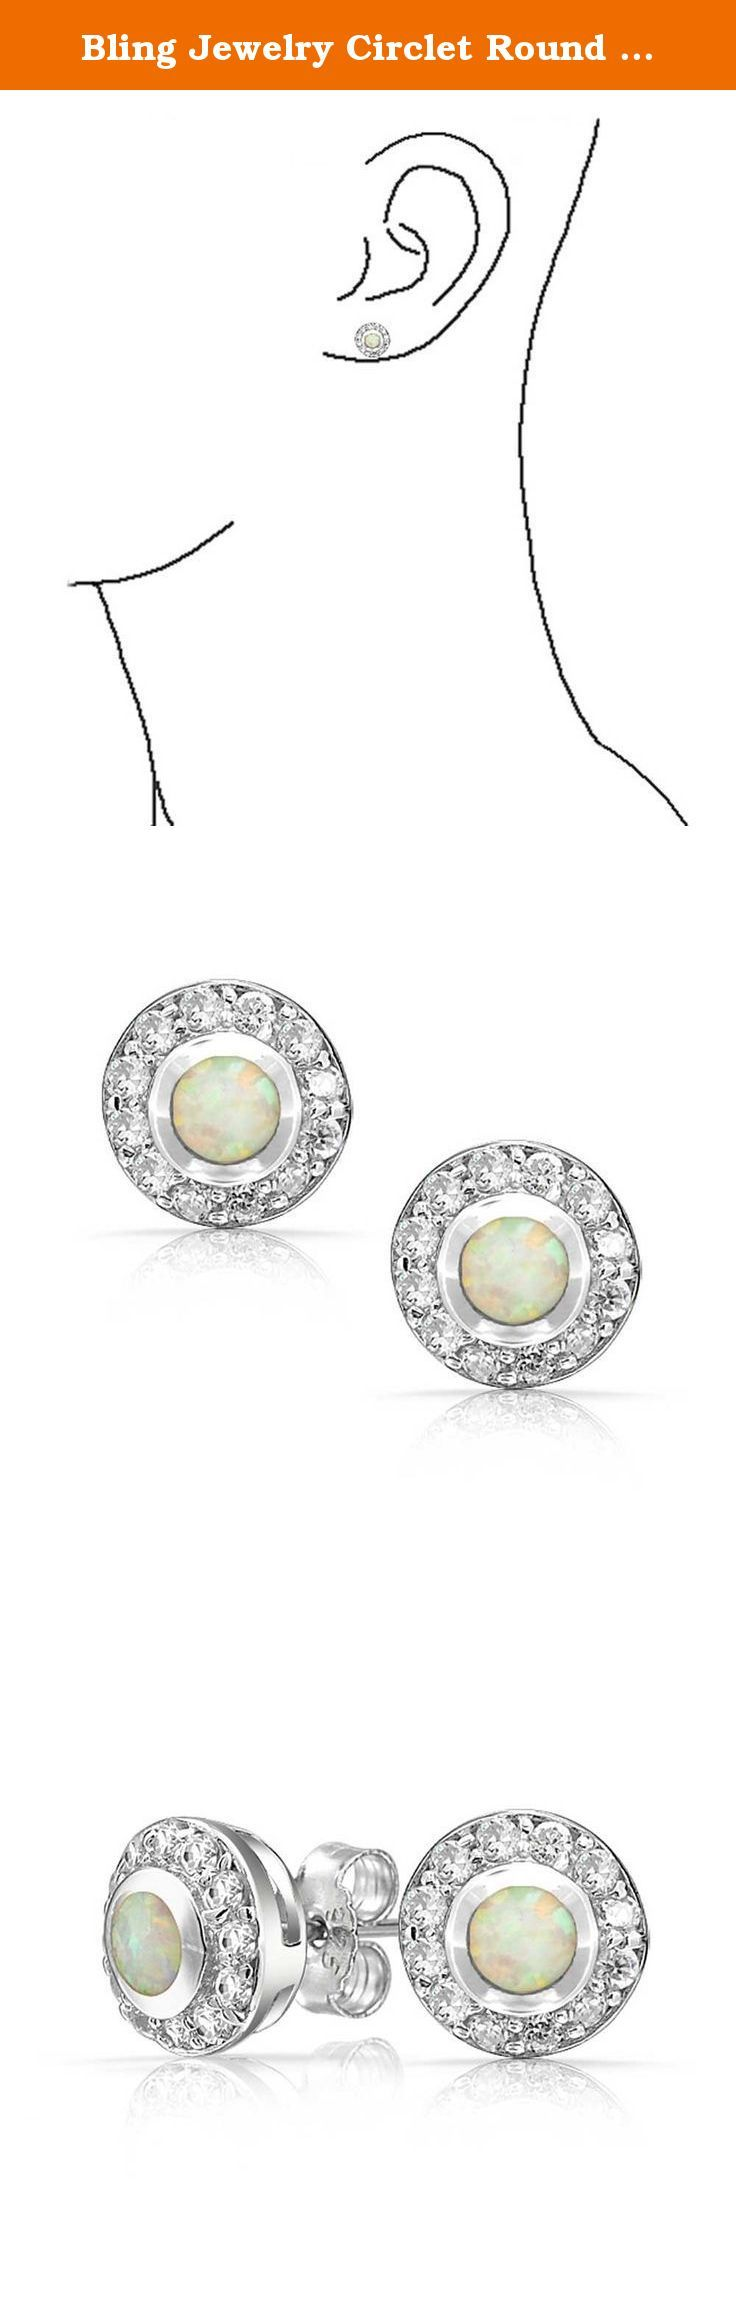 Bling Jewelry Circlet Round Synthetic White Opal Inlay Stud Earrings 925 Silver. October birthdays have never been more fun to celebrate with jewelry. Our CZ stud earrings are a perfect way to get the party started. Synthetic Opalescence means play of color. The Synthetic Opal in the center of our circle stud earrings emits a rainbow of colors, depending on the way the light hits the stone. Its radiance draws attention to this lovely piece of jewelry that is a must have item to add to…